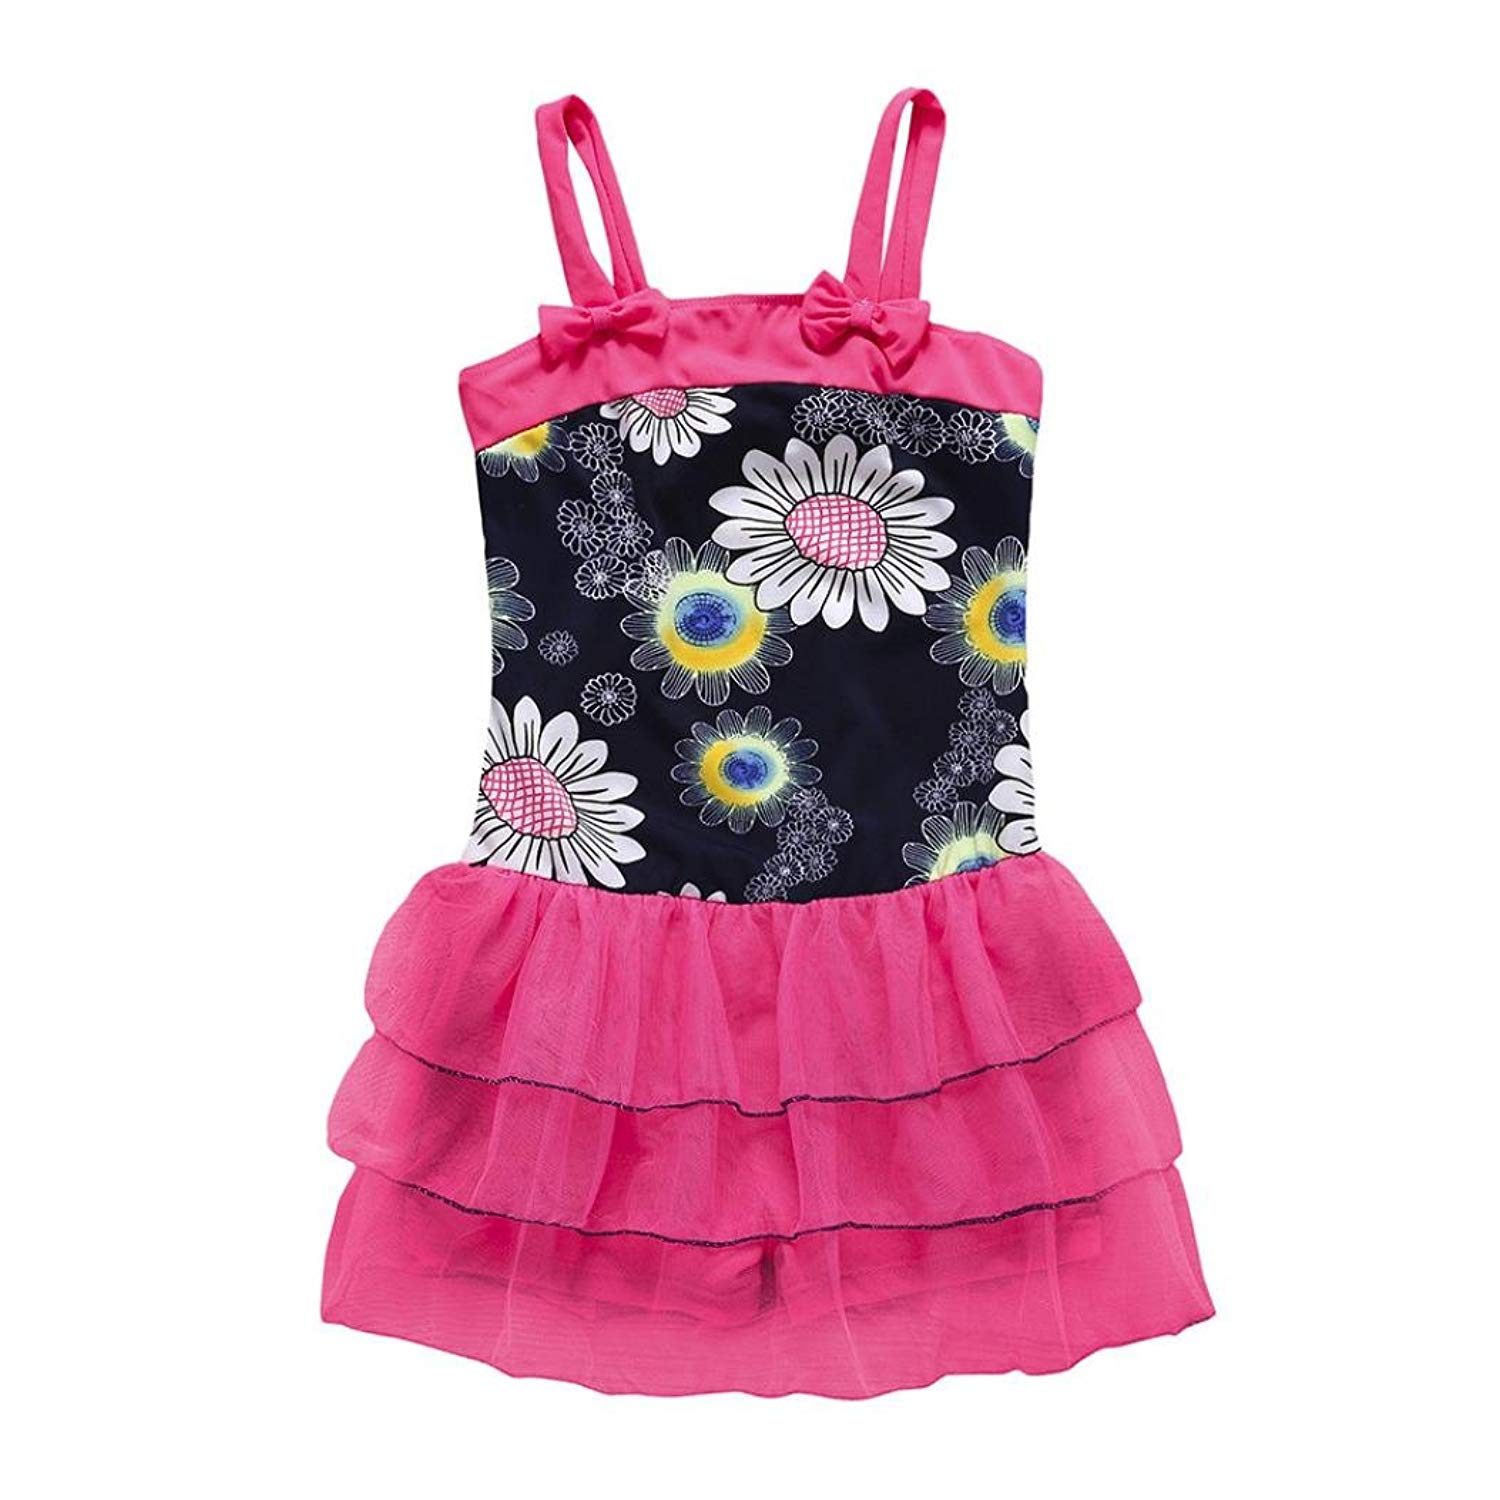 911b19581b0bb Get Quotations · Little Girls Flowers   Bowknot One Pieces Swim Suits Rash  Guard Shirts with Tutu Tulle